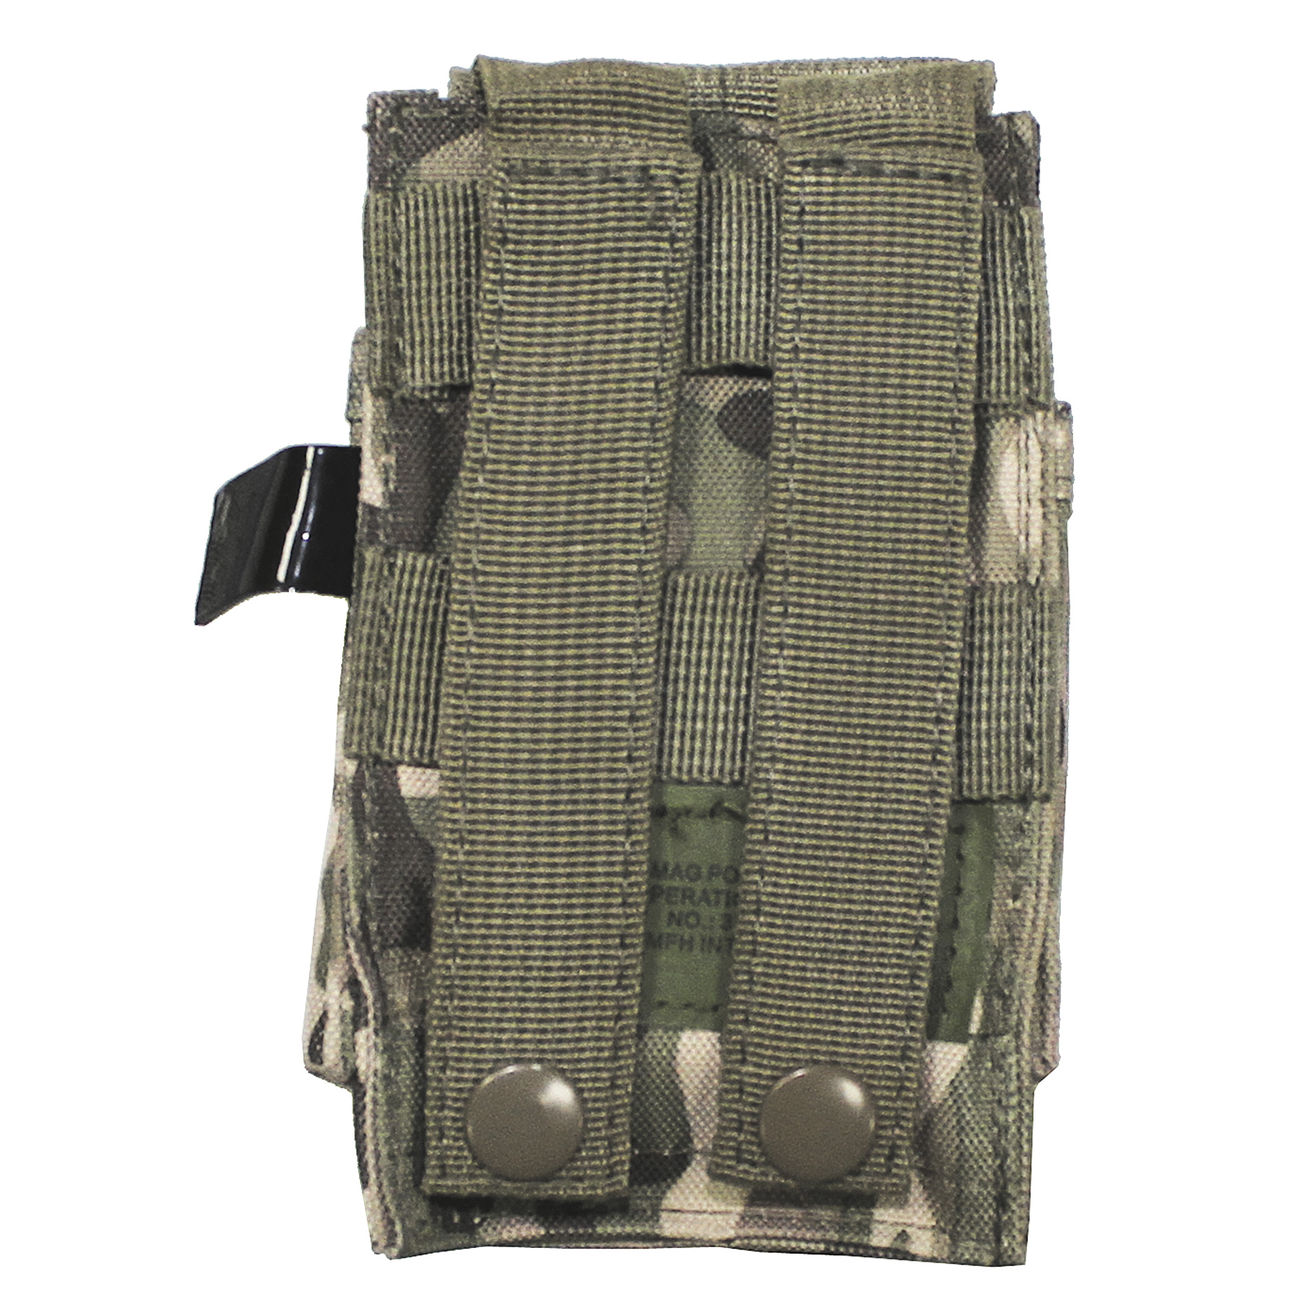 MFH Magazintasche einfach Molle operation camo 1